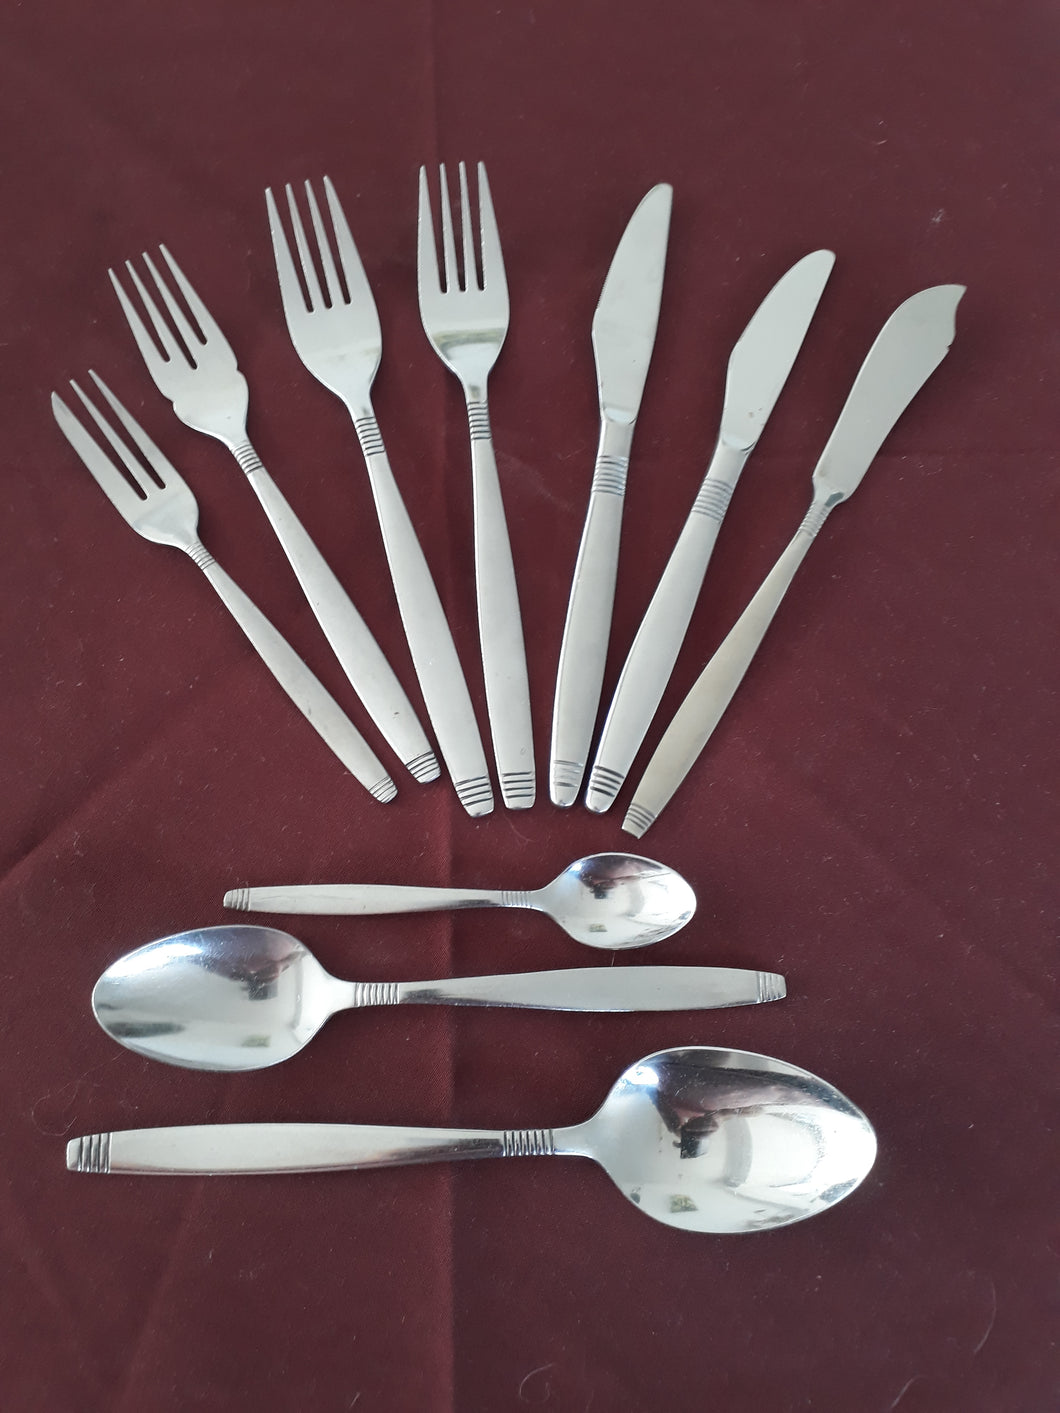 Fish Fork from the Style cutlery collection